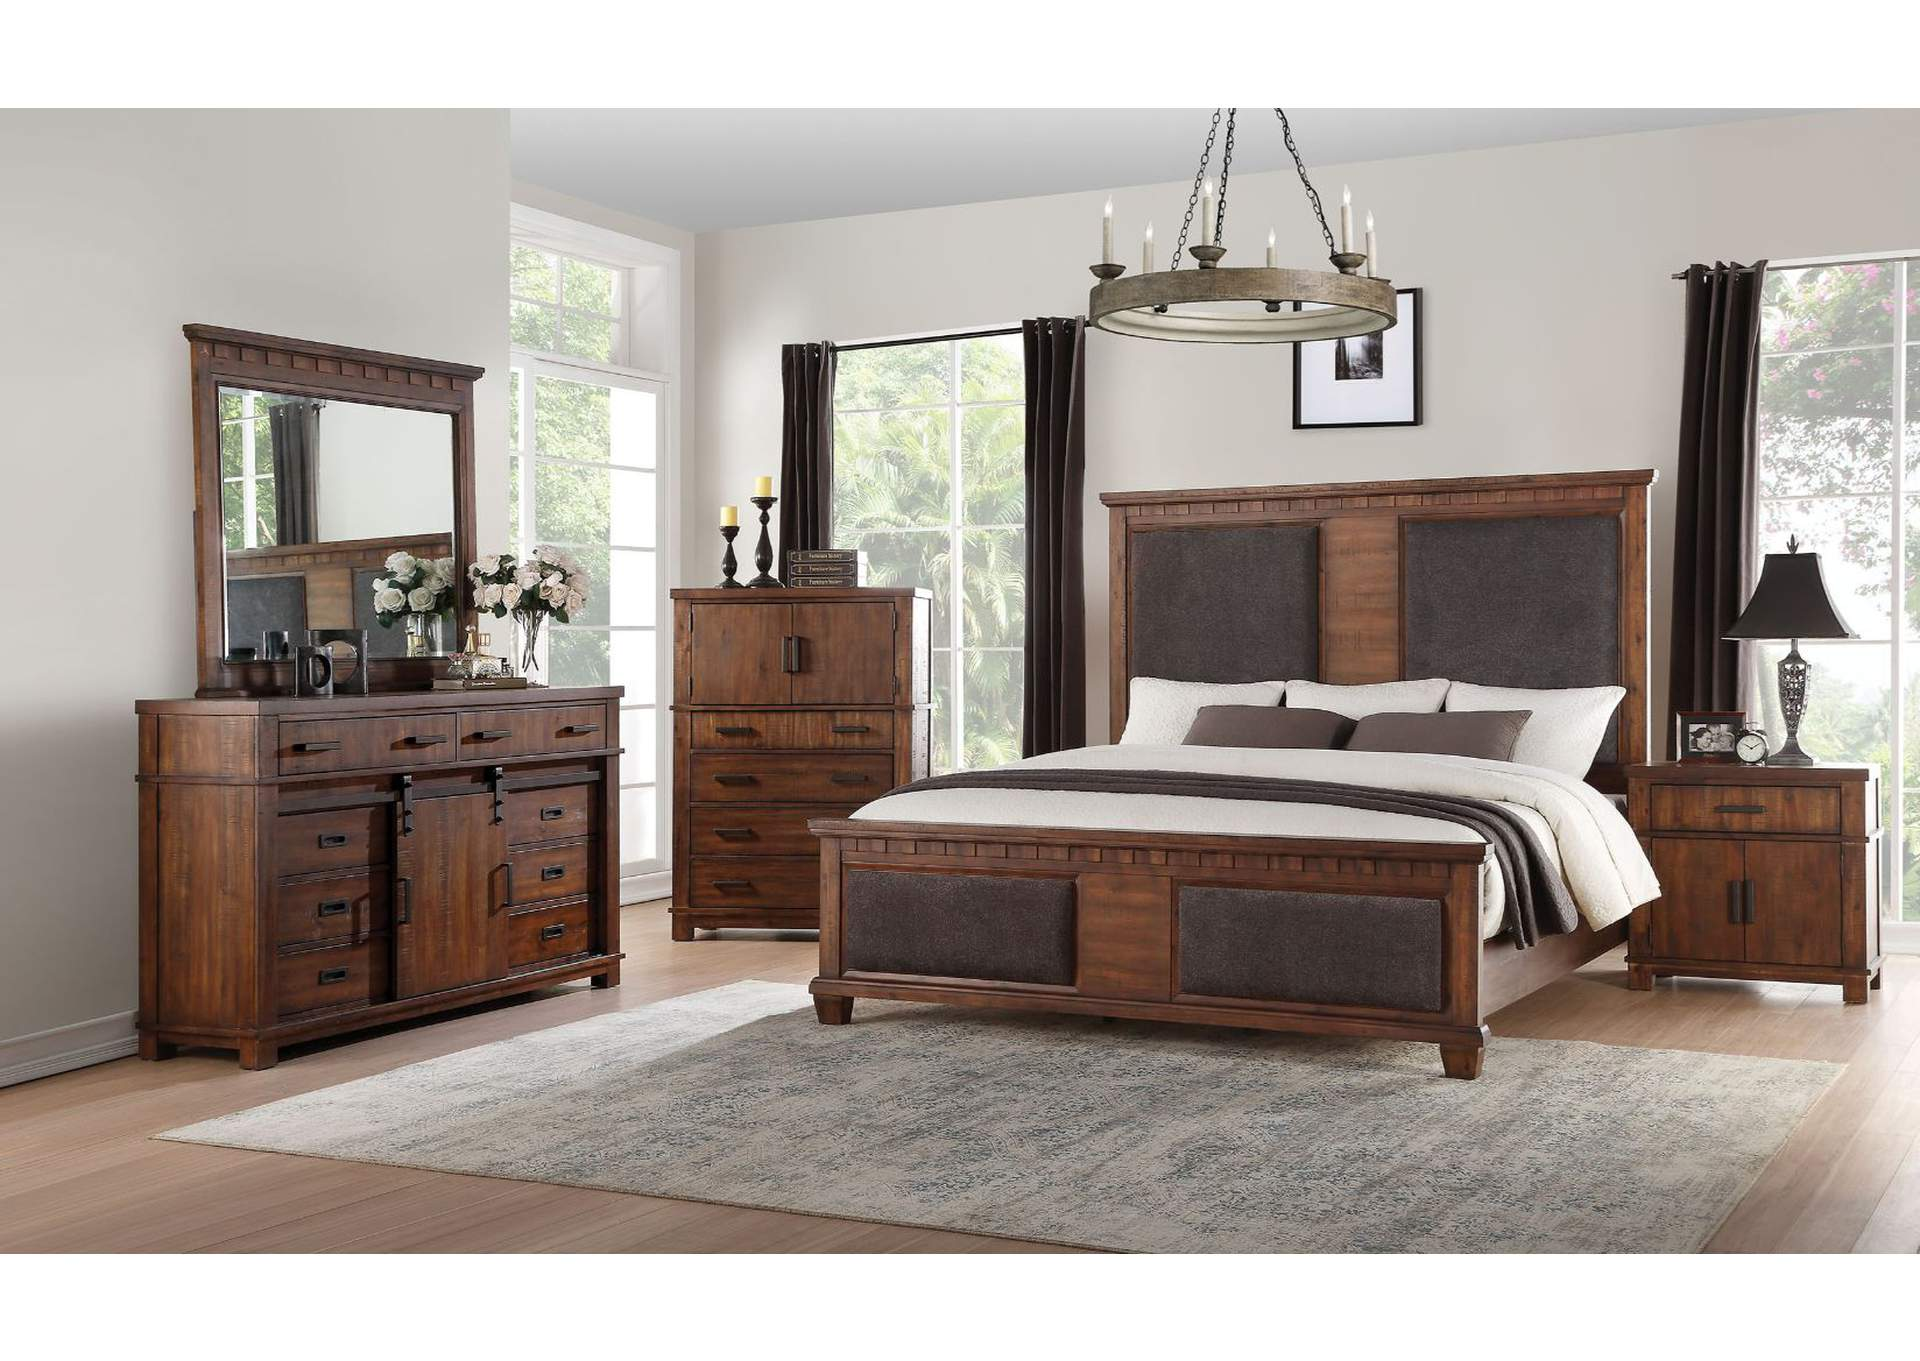 Vibia Brown Fabric & Cherry Oak Queen Bed,Acme